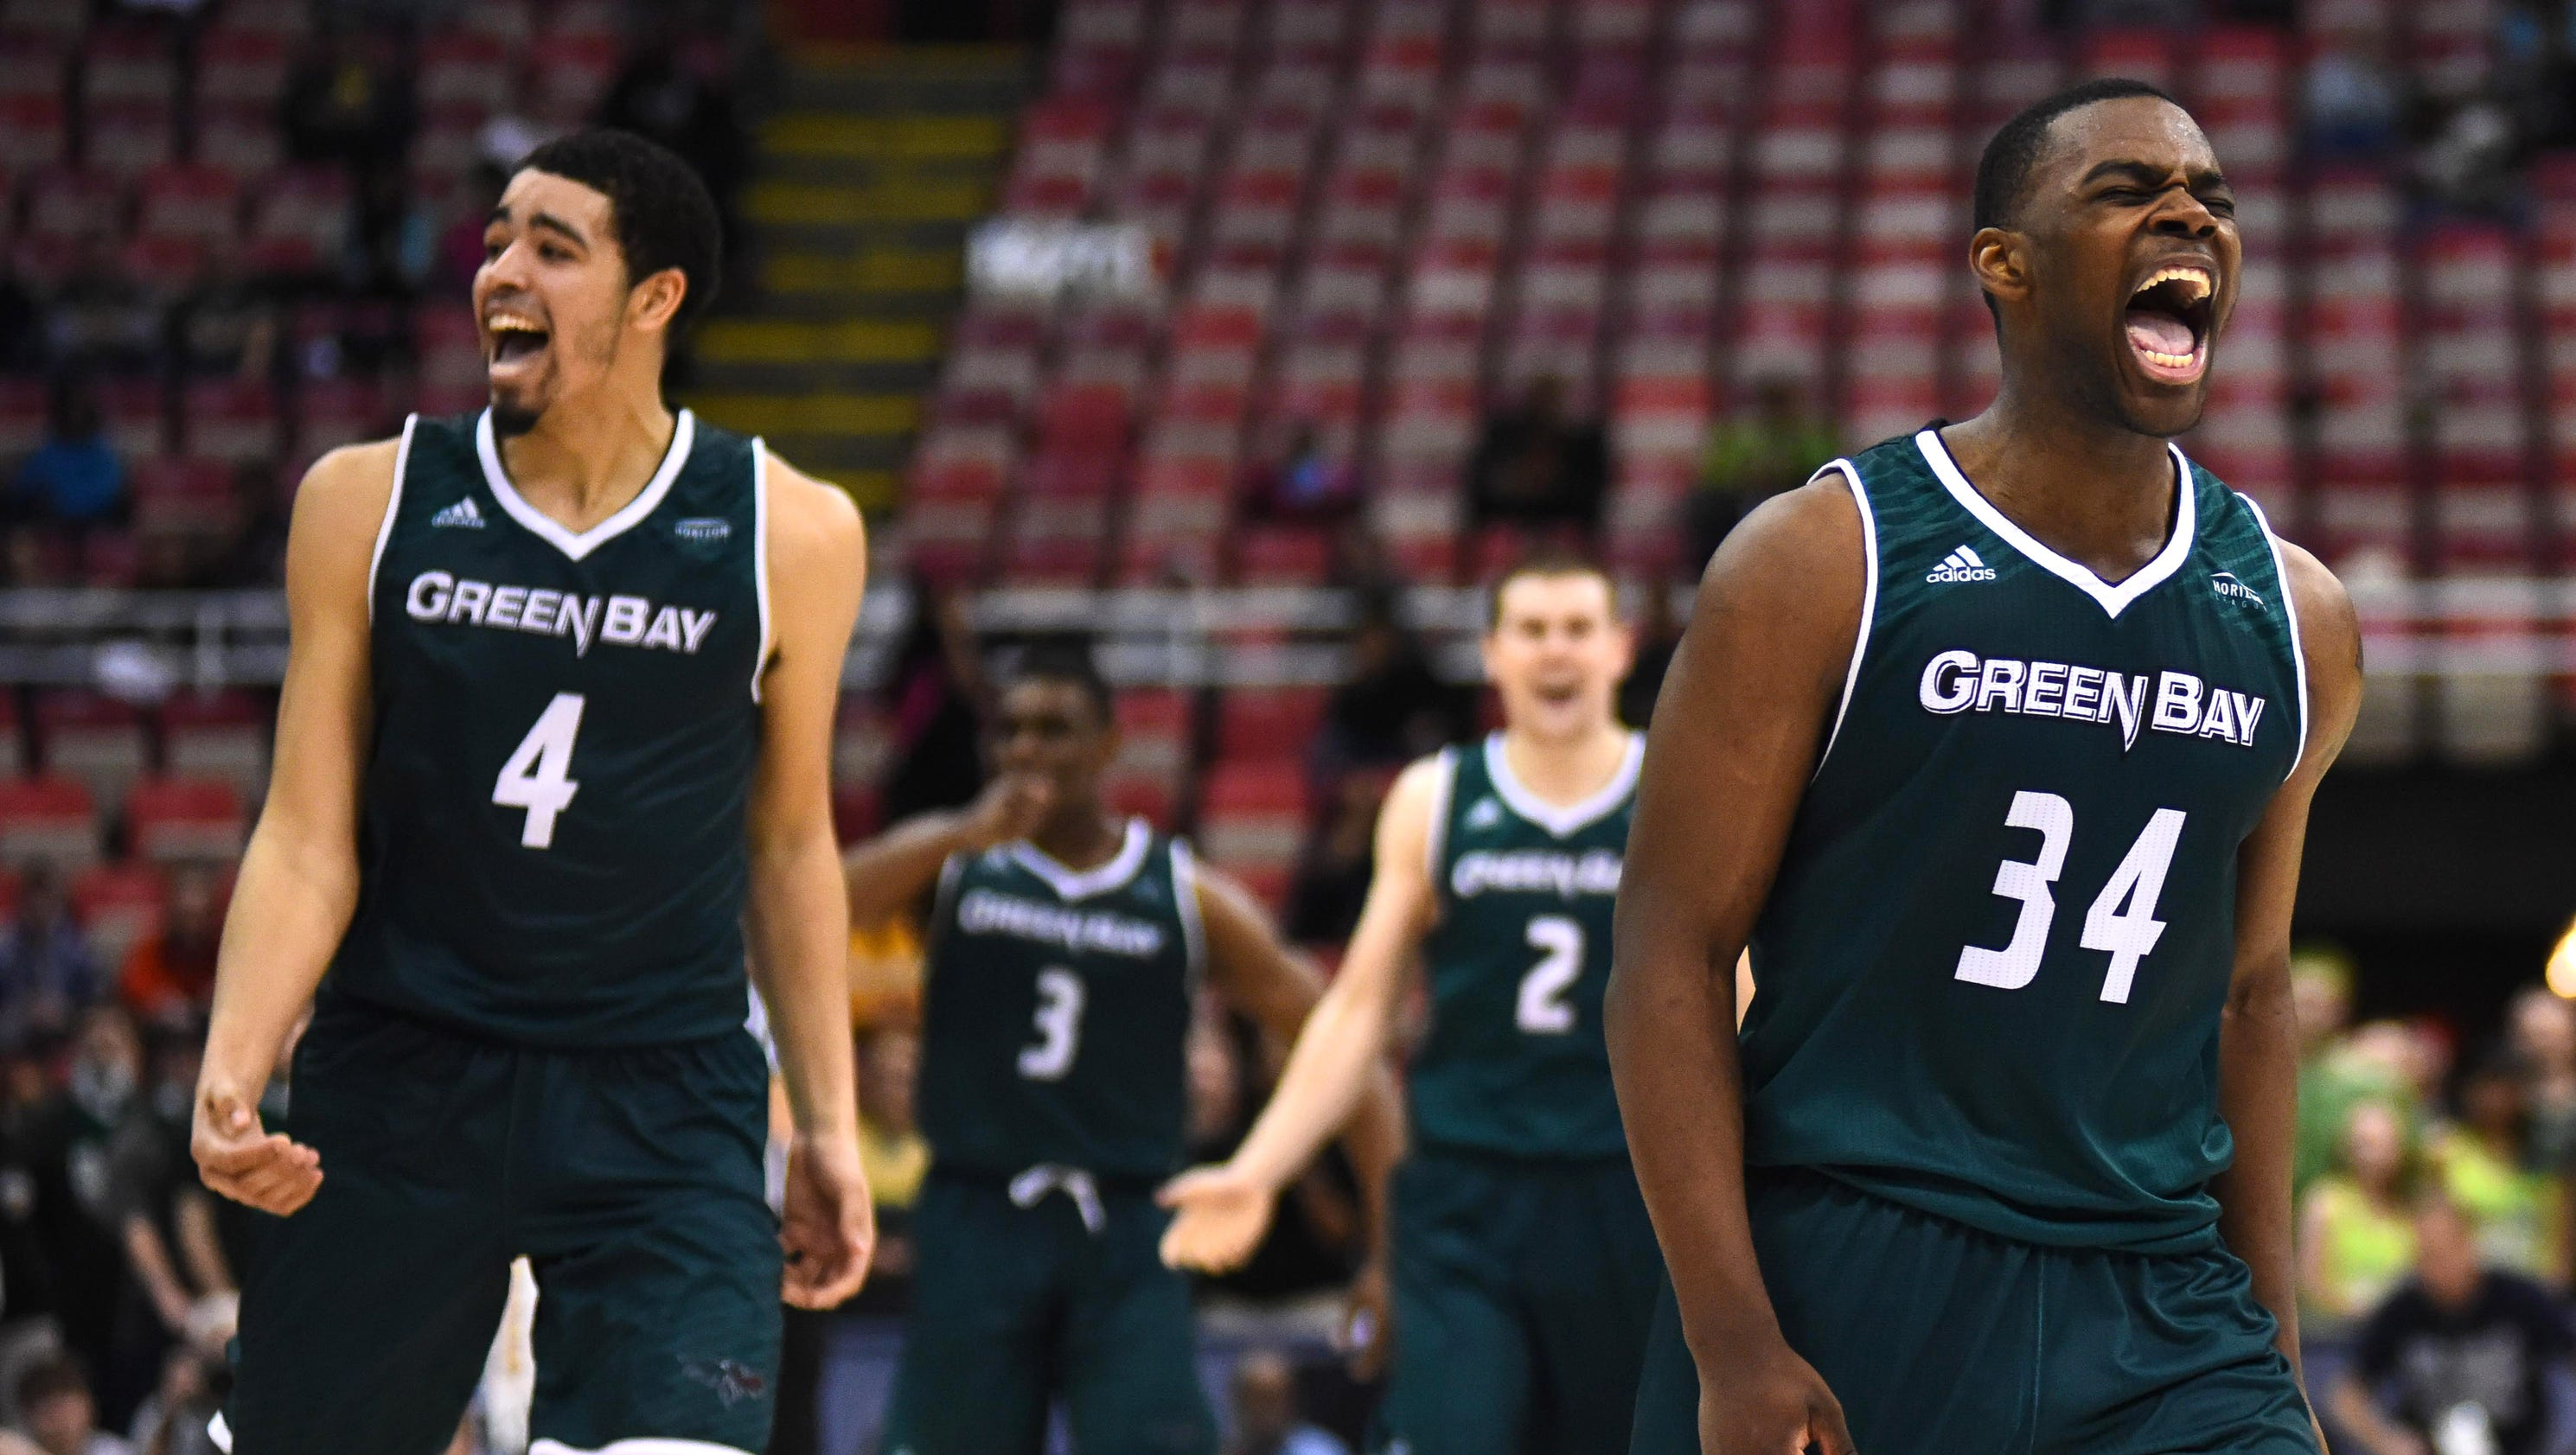 ncaa basketball scores green bay all basketball scores info